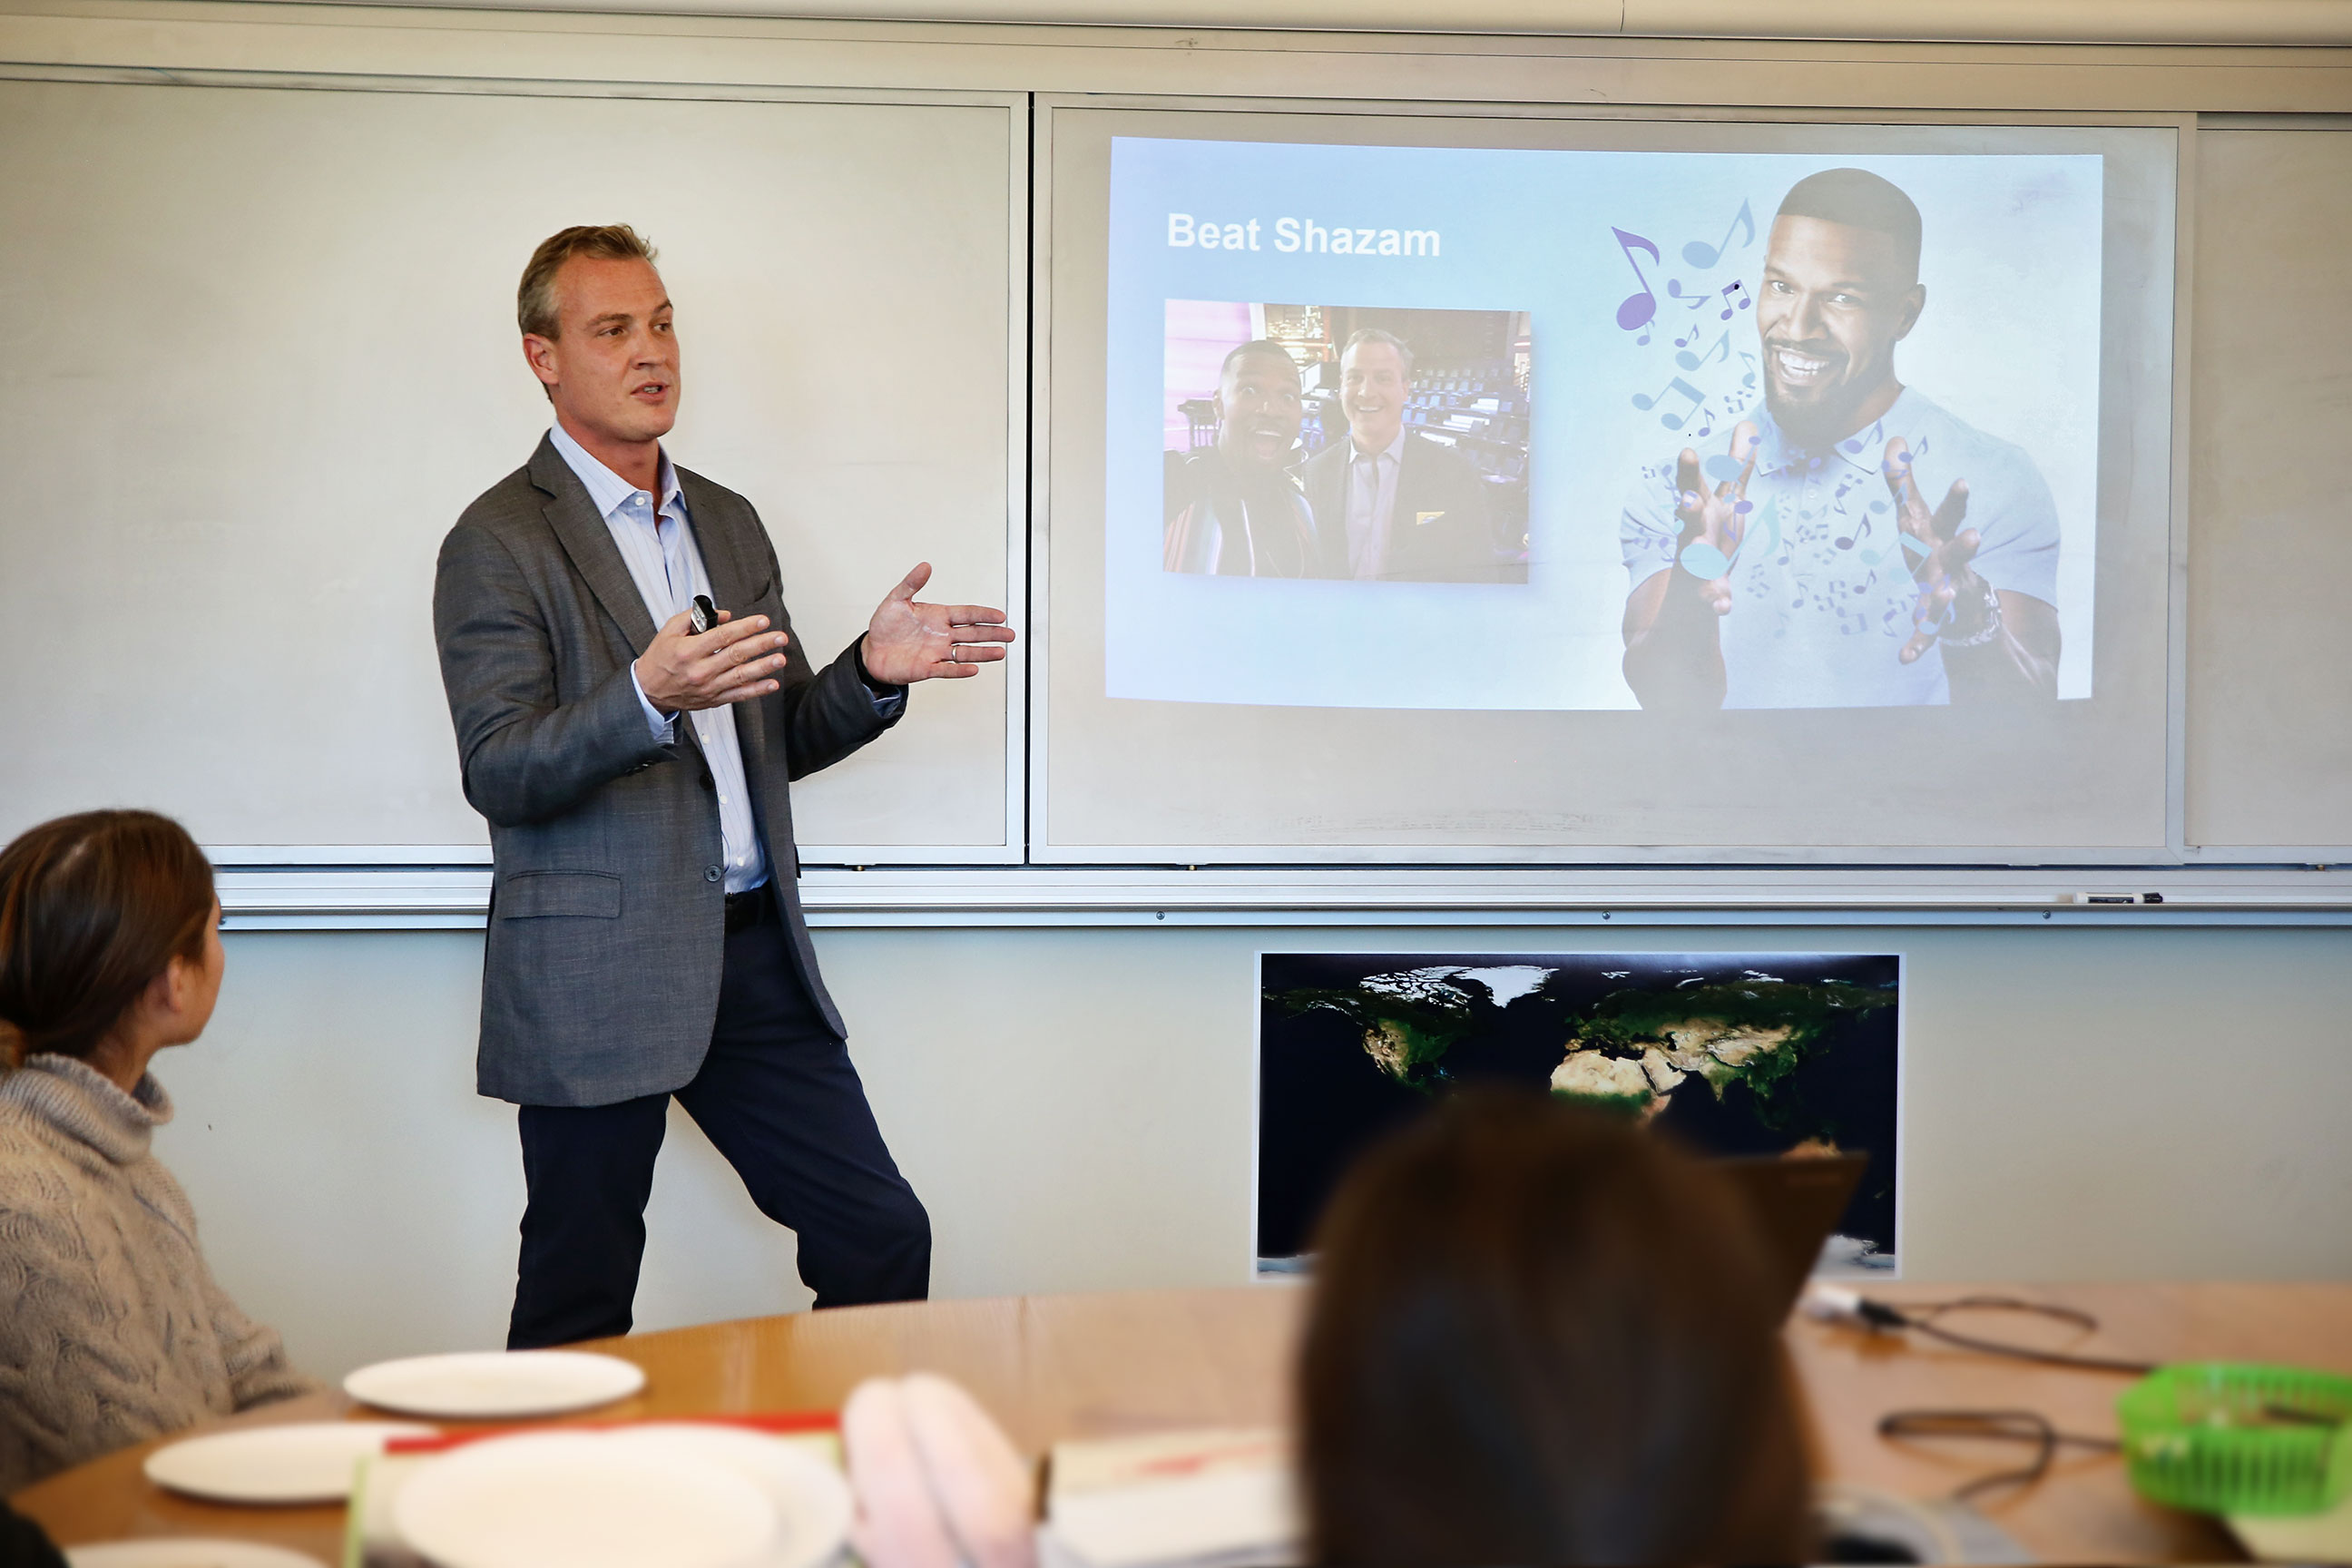 Rich Riley CEO of Shazam presents at St. Luke's School Lunch and Lead speaker series